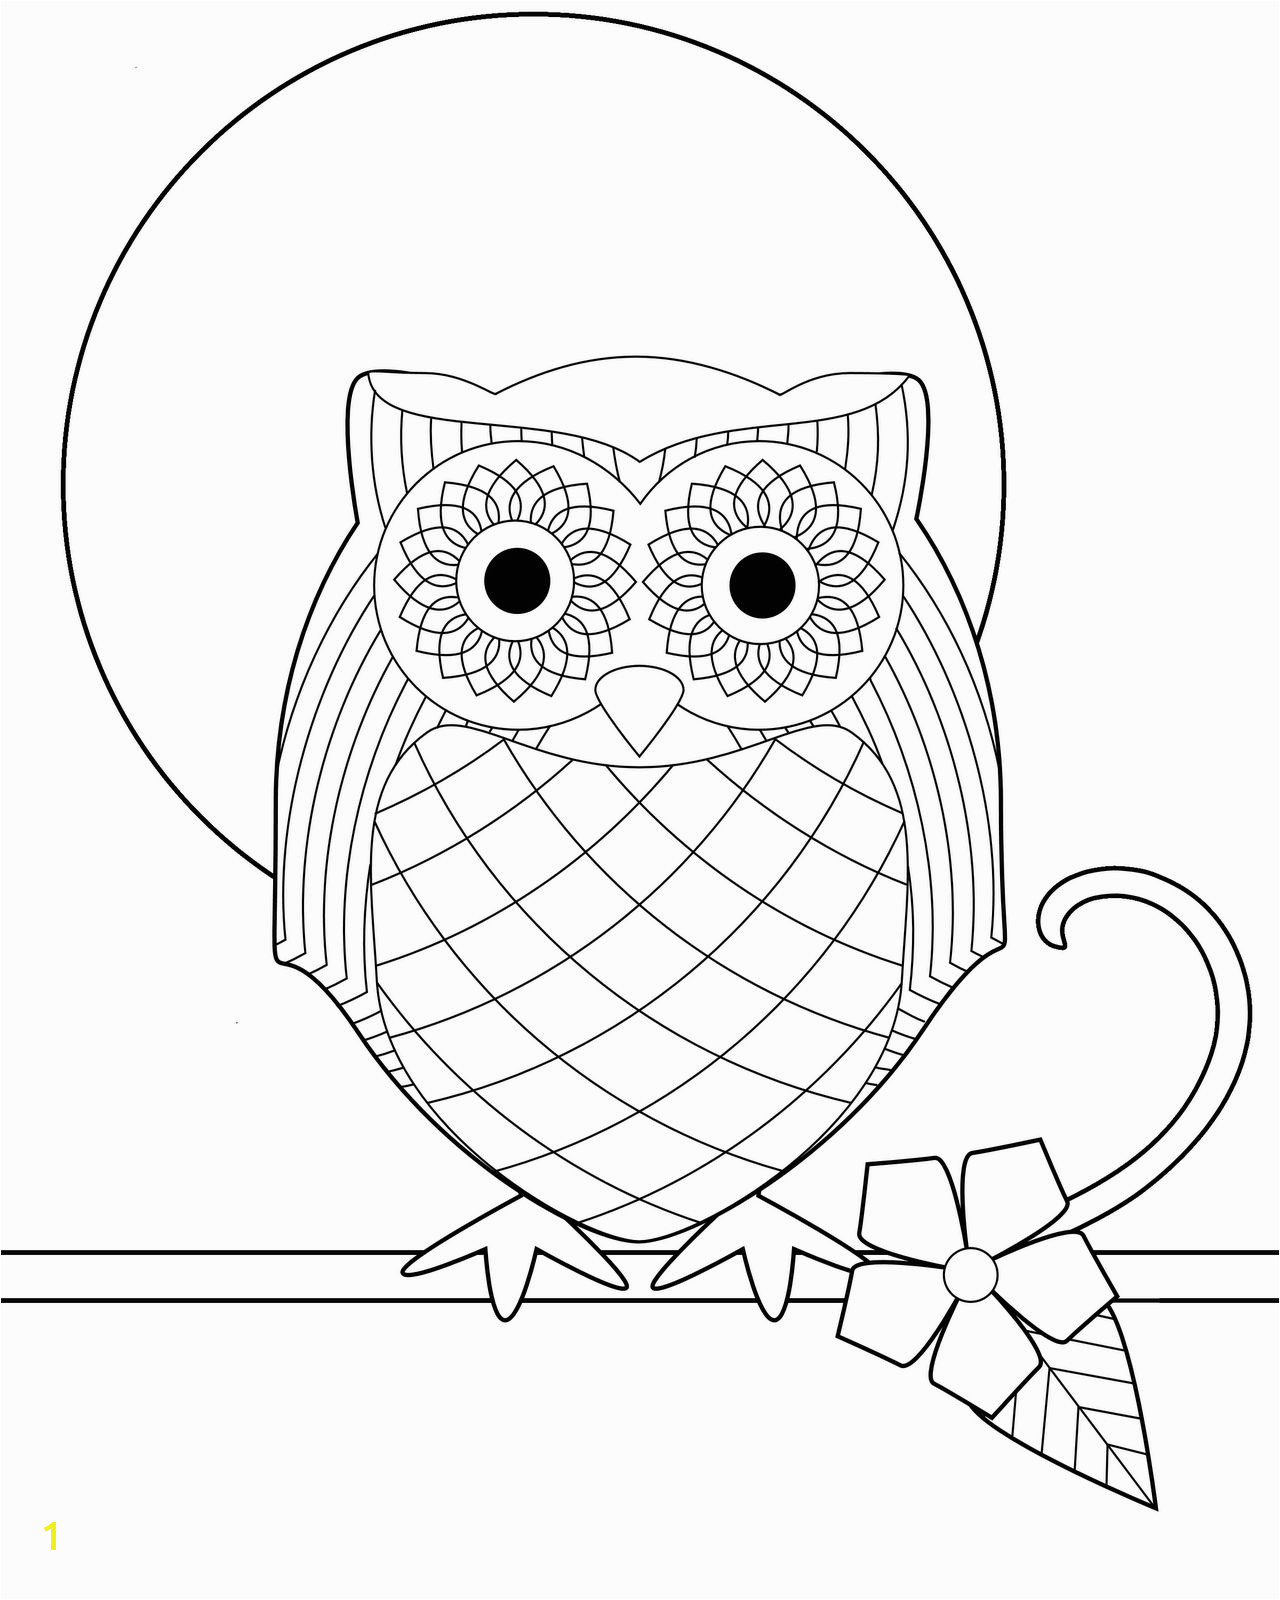 Owl Coloring Book Pages Coloring Pages Coloring Pages For Kids